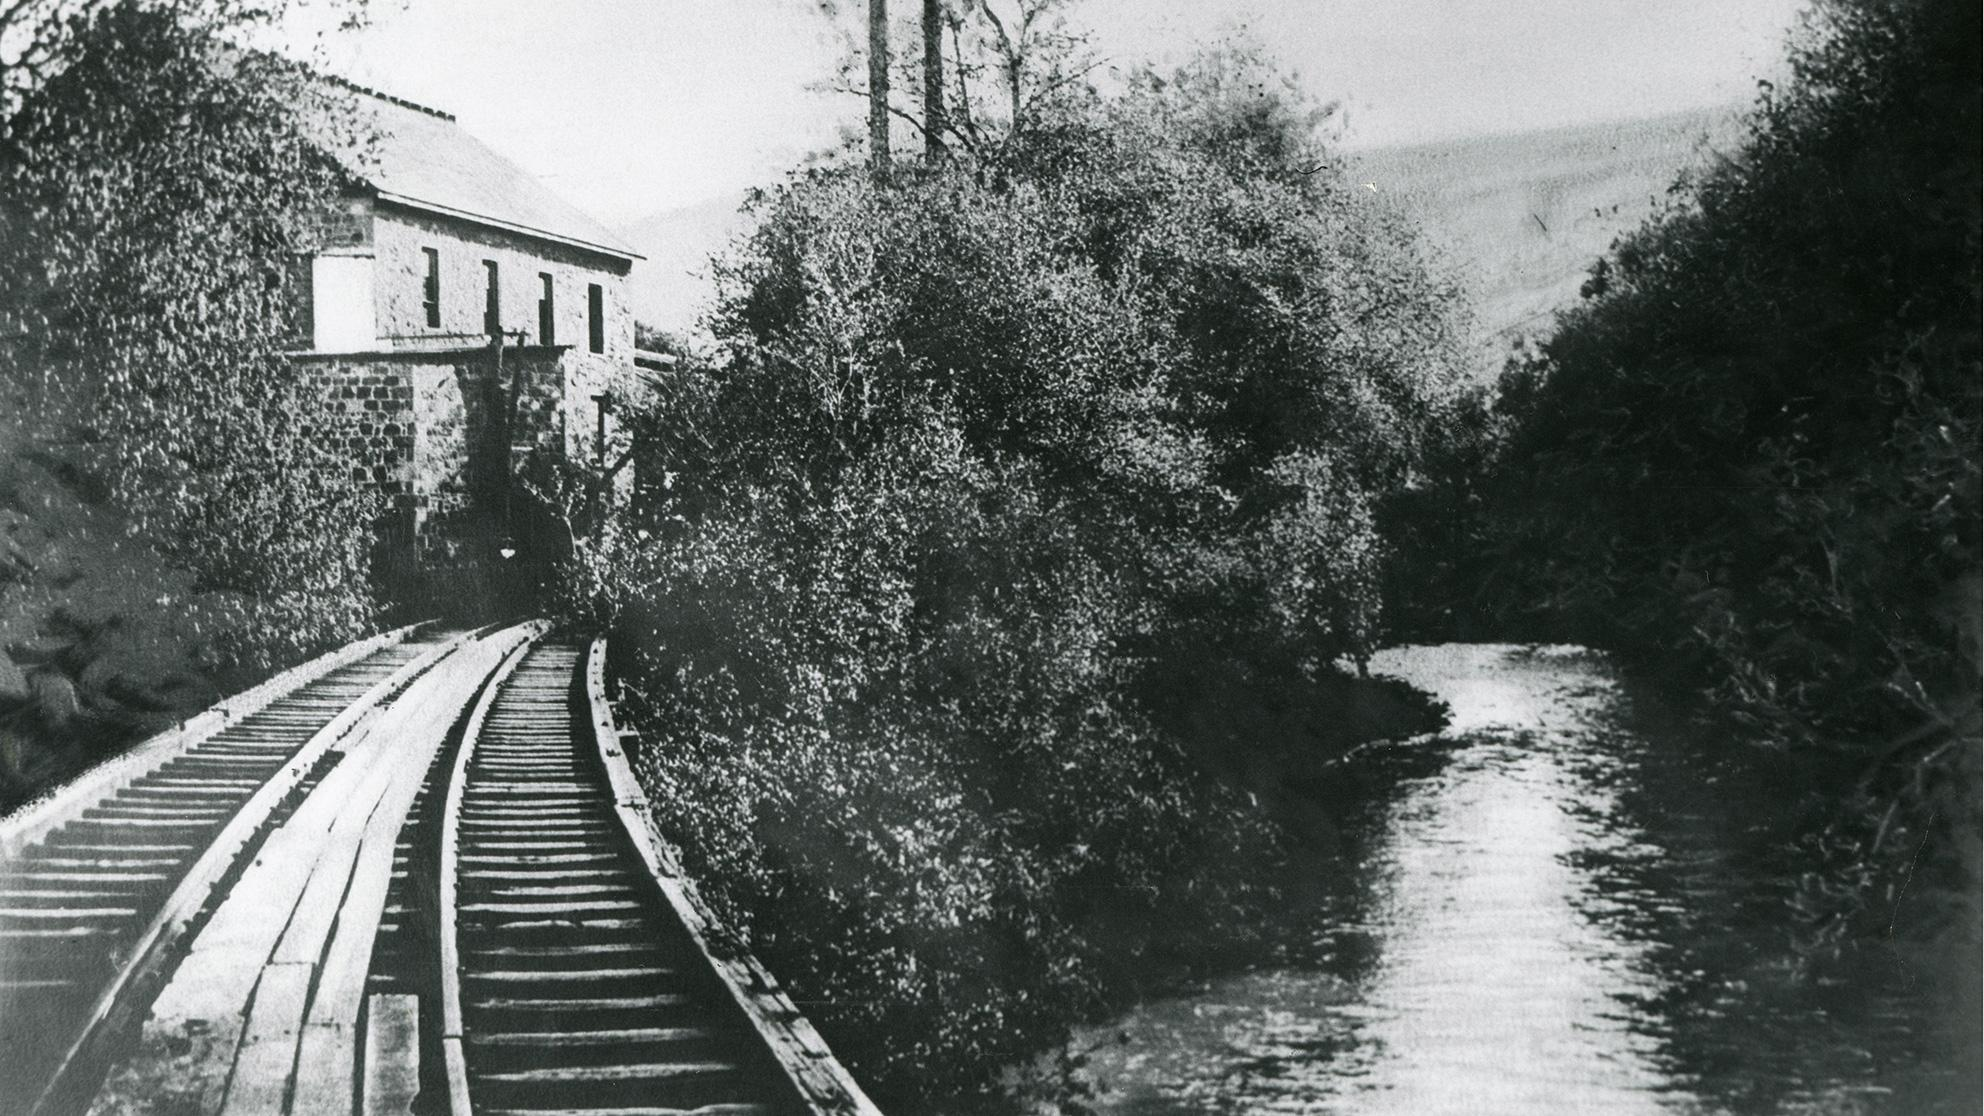 Archival black and white photo of train tracks along a river